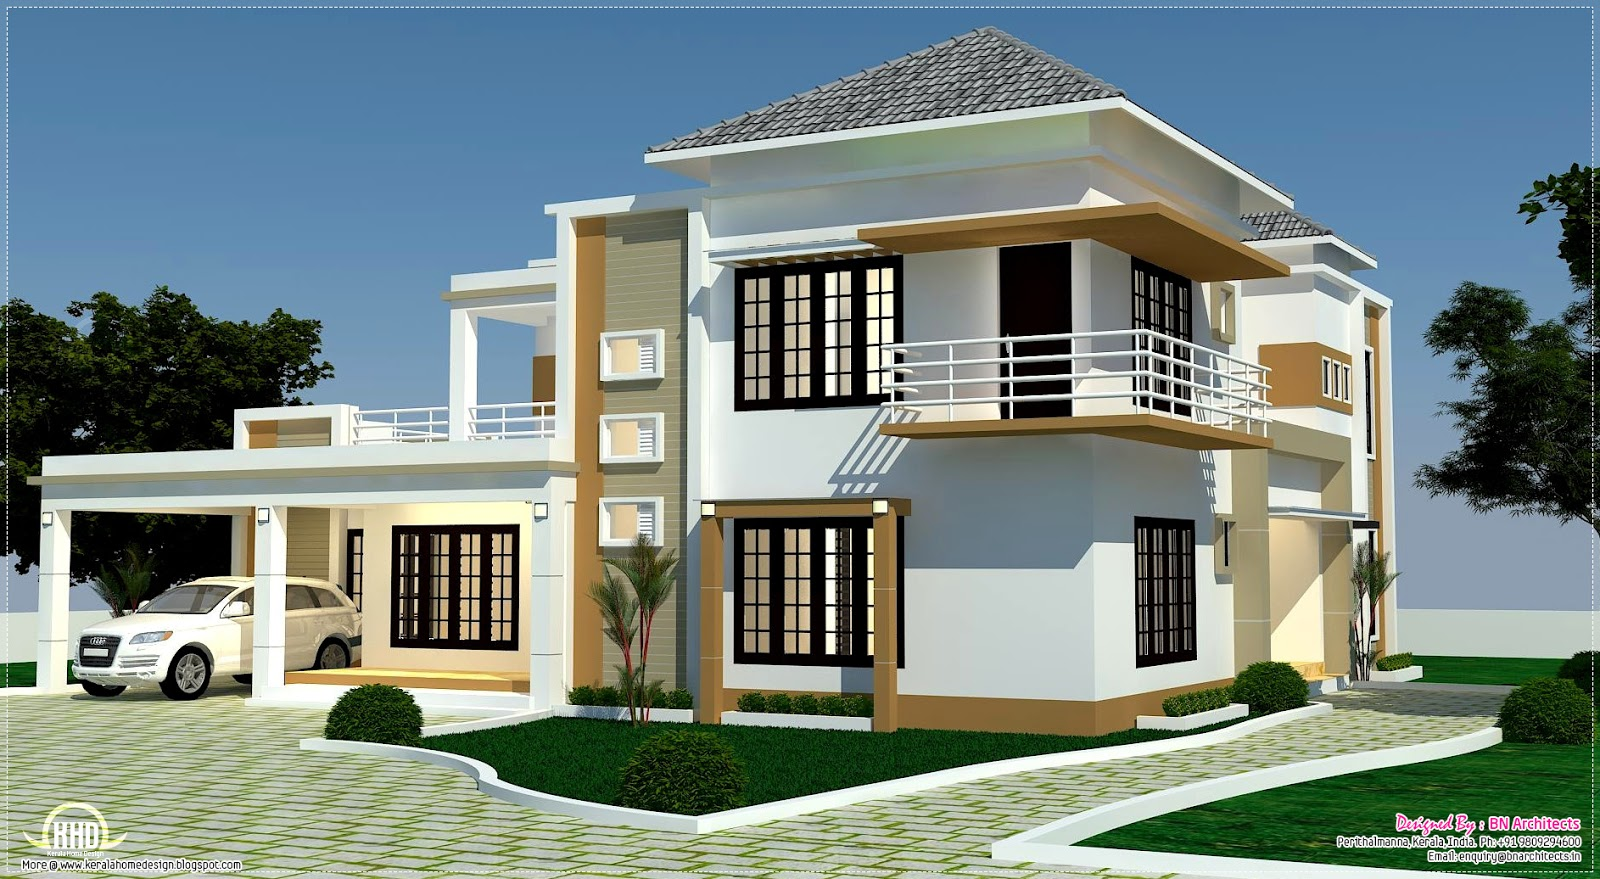 Floor plan 3d views and interiors of 4 bedroom villa for 3d house plans